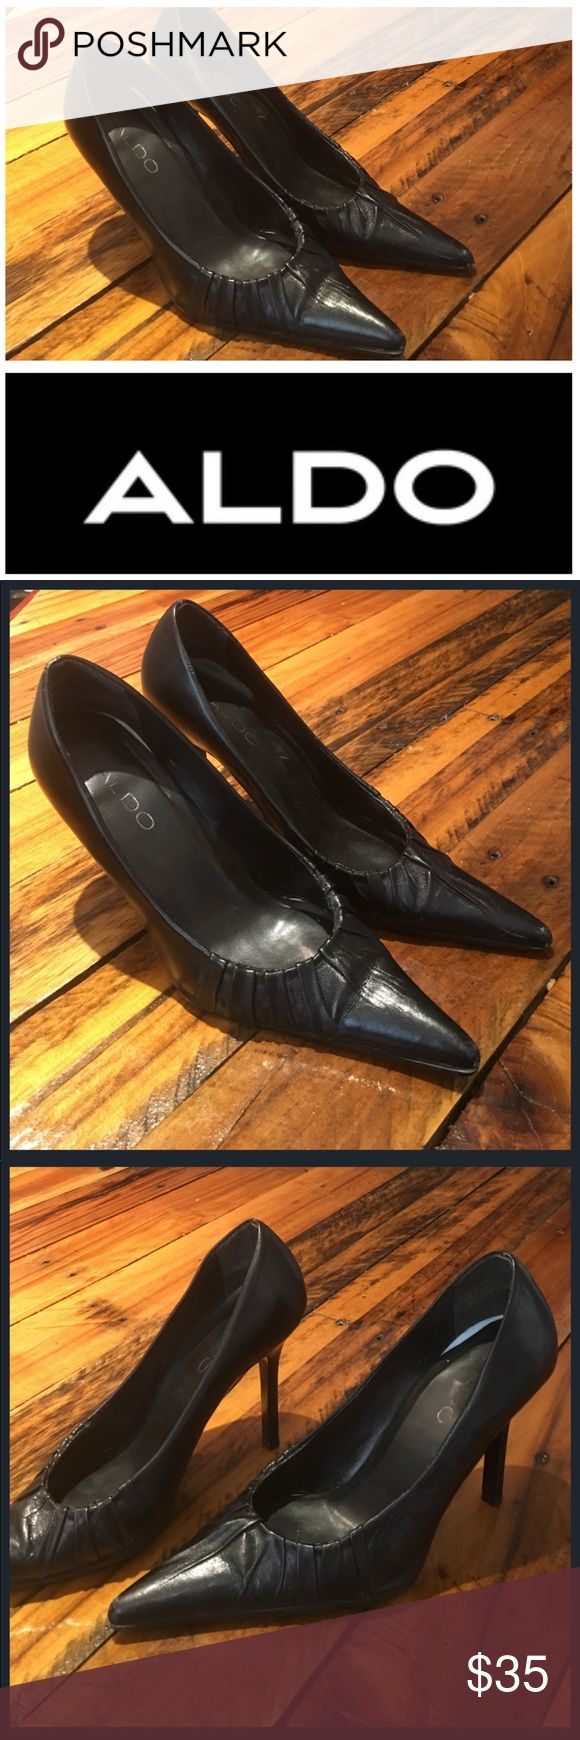 Giant Designer Shoe Sale Excellent Condition Black ALDO Chic and Stylish for the Fashion Footwear Diva If you have any questions please don't hesitate to ask Aldo Shoes Heels